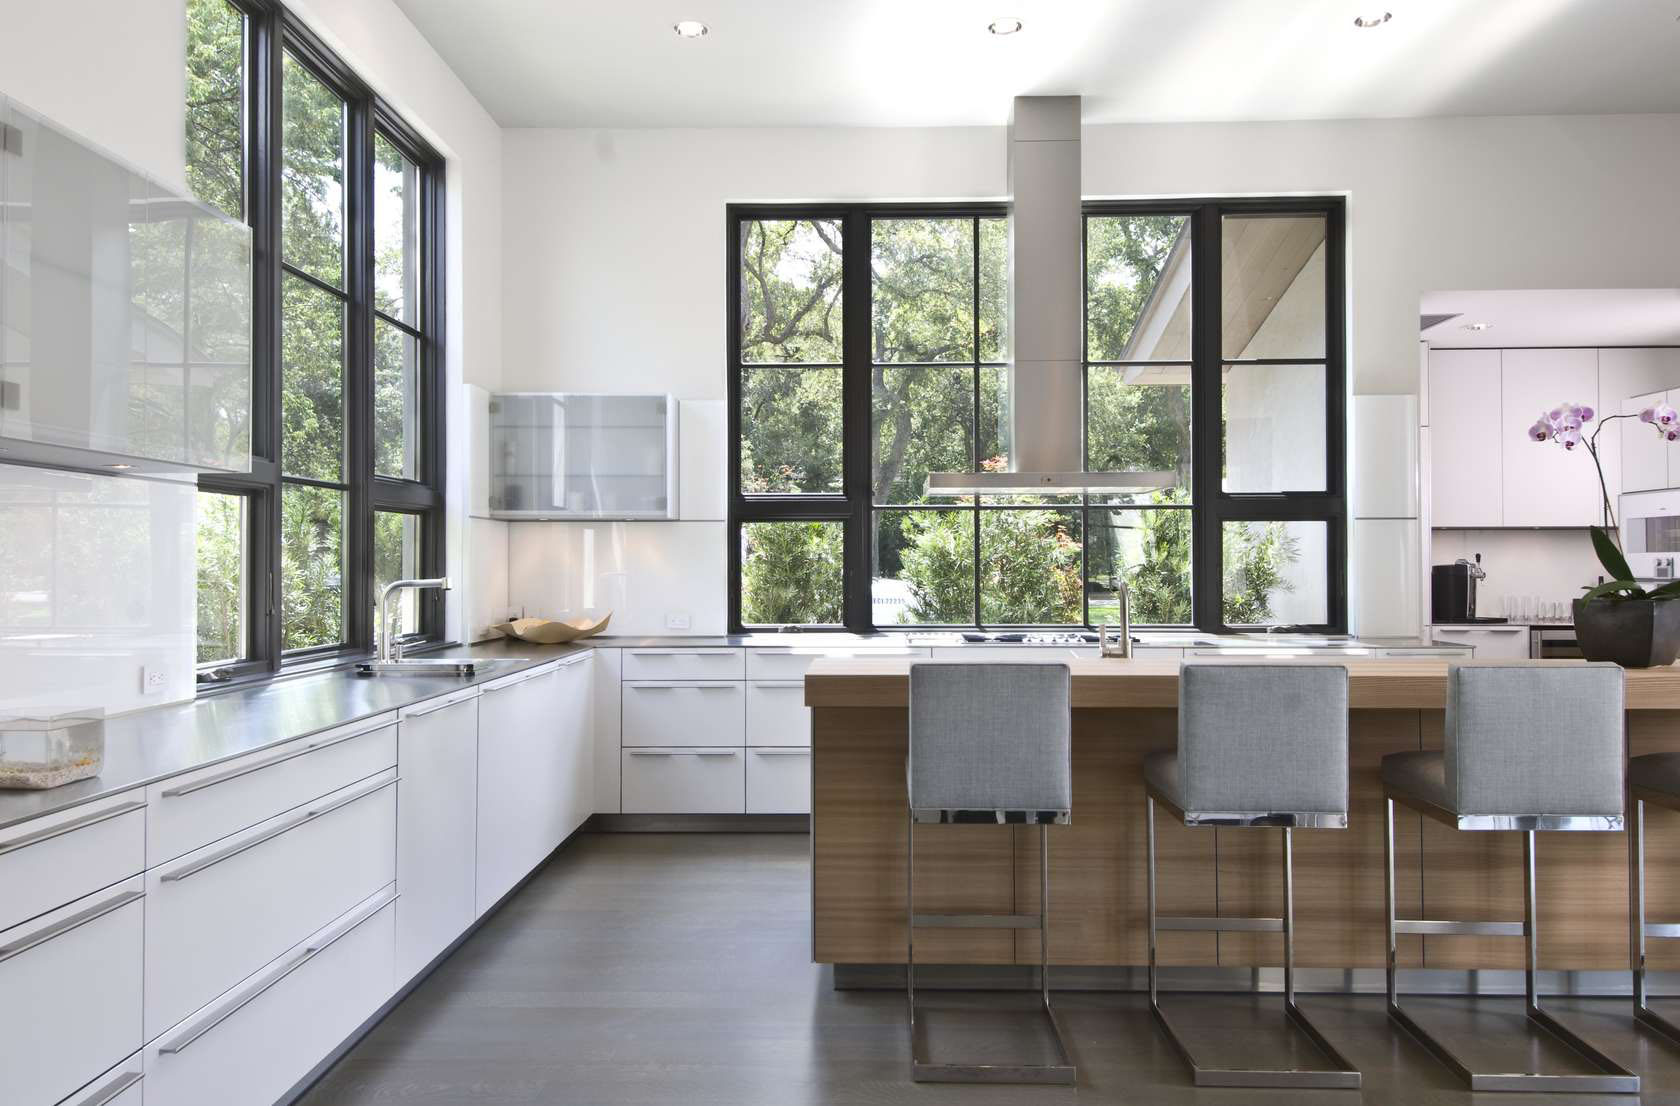 Bright Modern White Kitchen with Stainless Steel Appliances